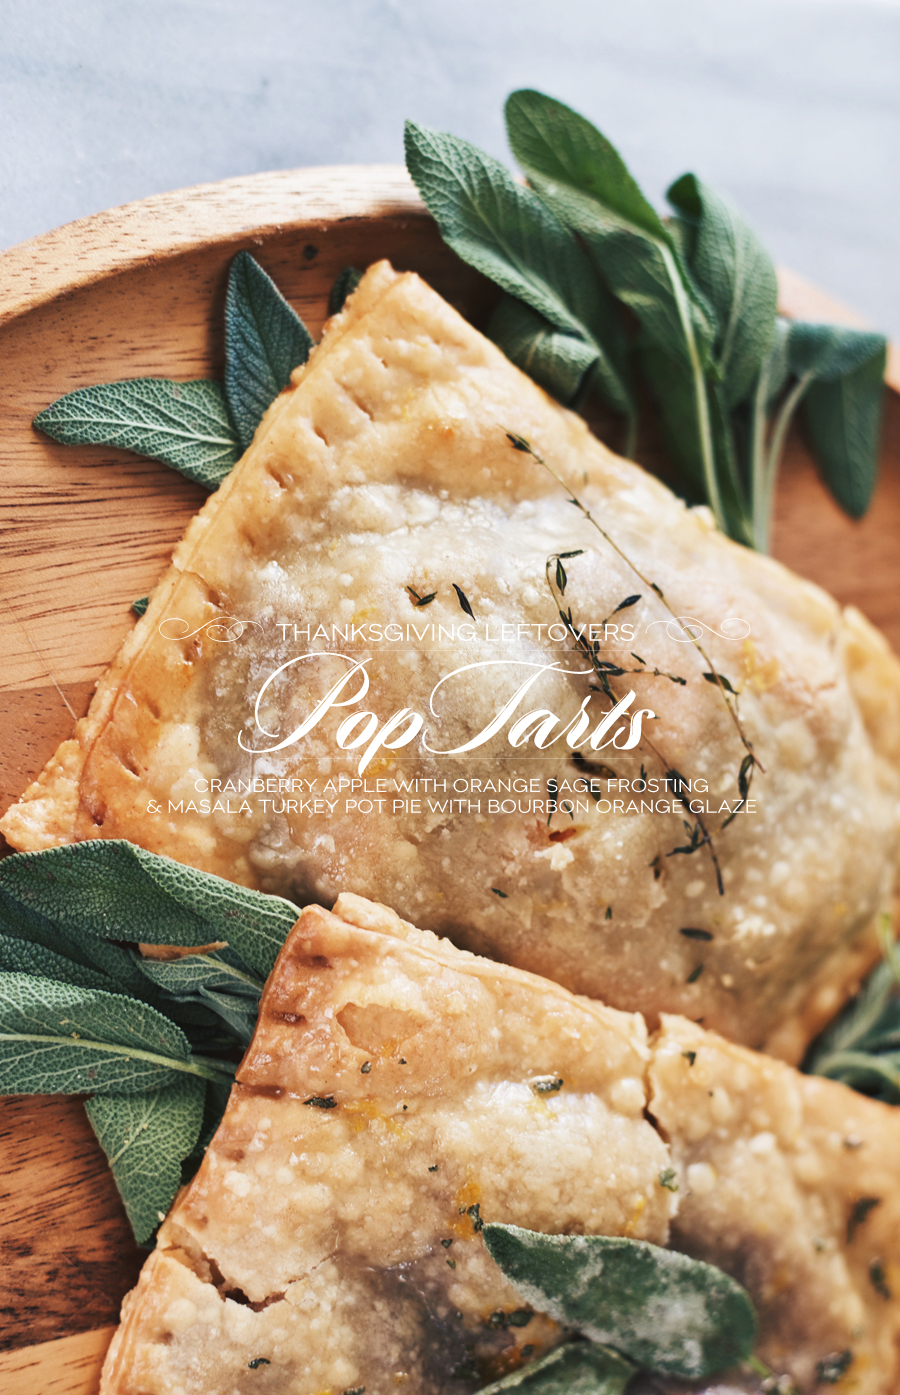 Thanksgiving Leftovers | Dine X Design | Pop Tarts